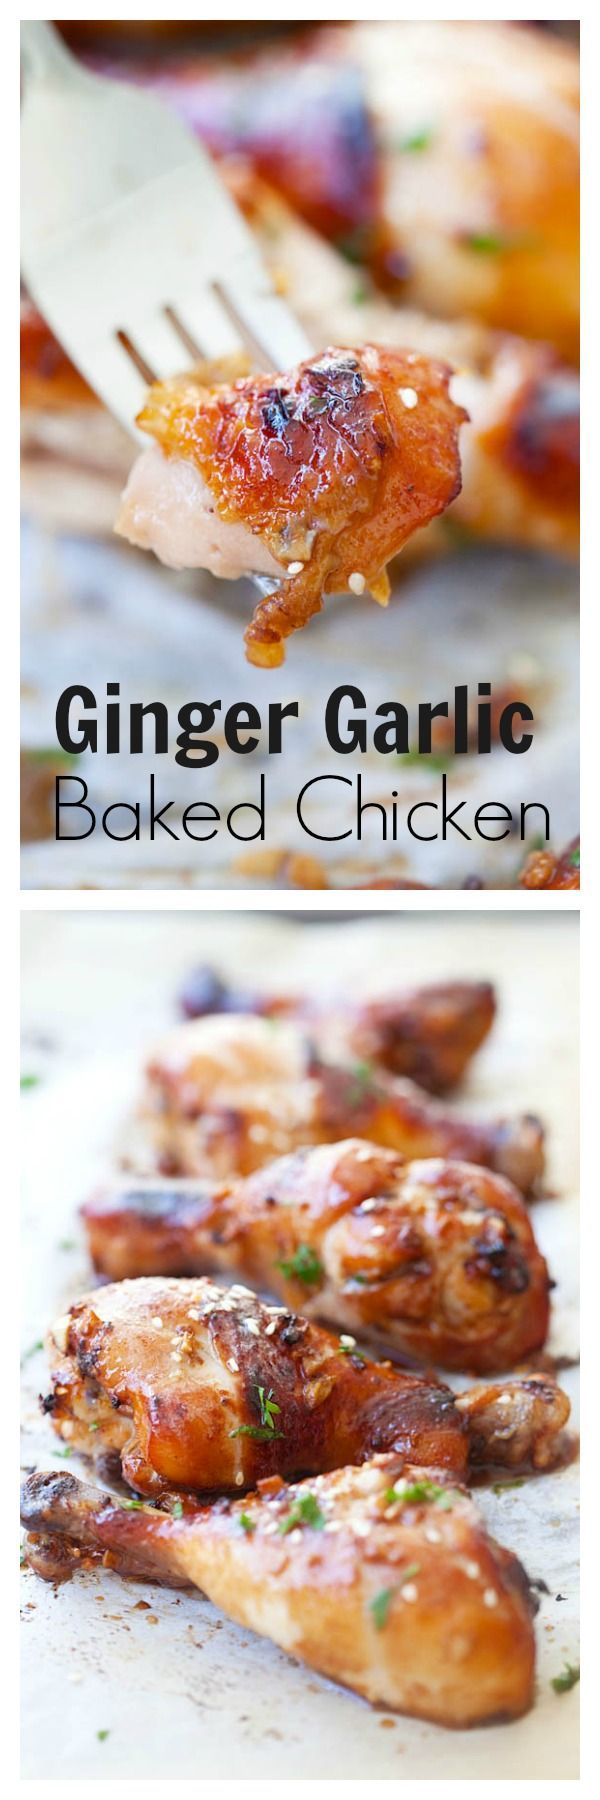 Ginger garlic baked chicken - marinated with honey, soy, ginger & garlic. The juiciest and most delicious chicken EVER | rasamalaysia.com